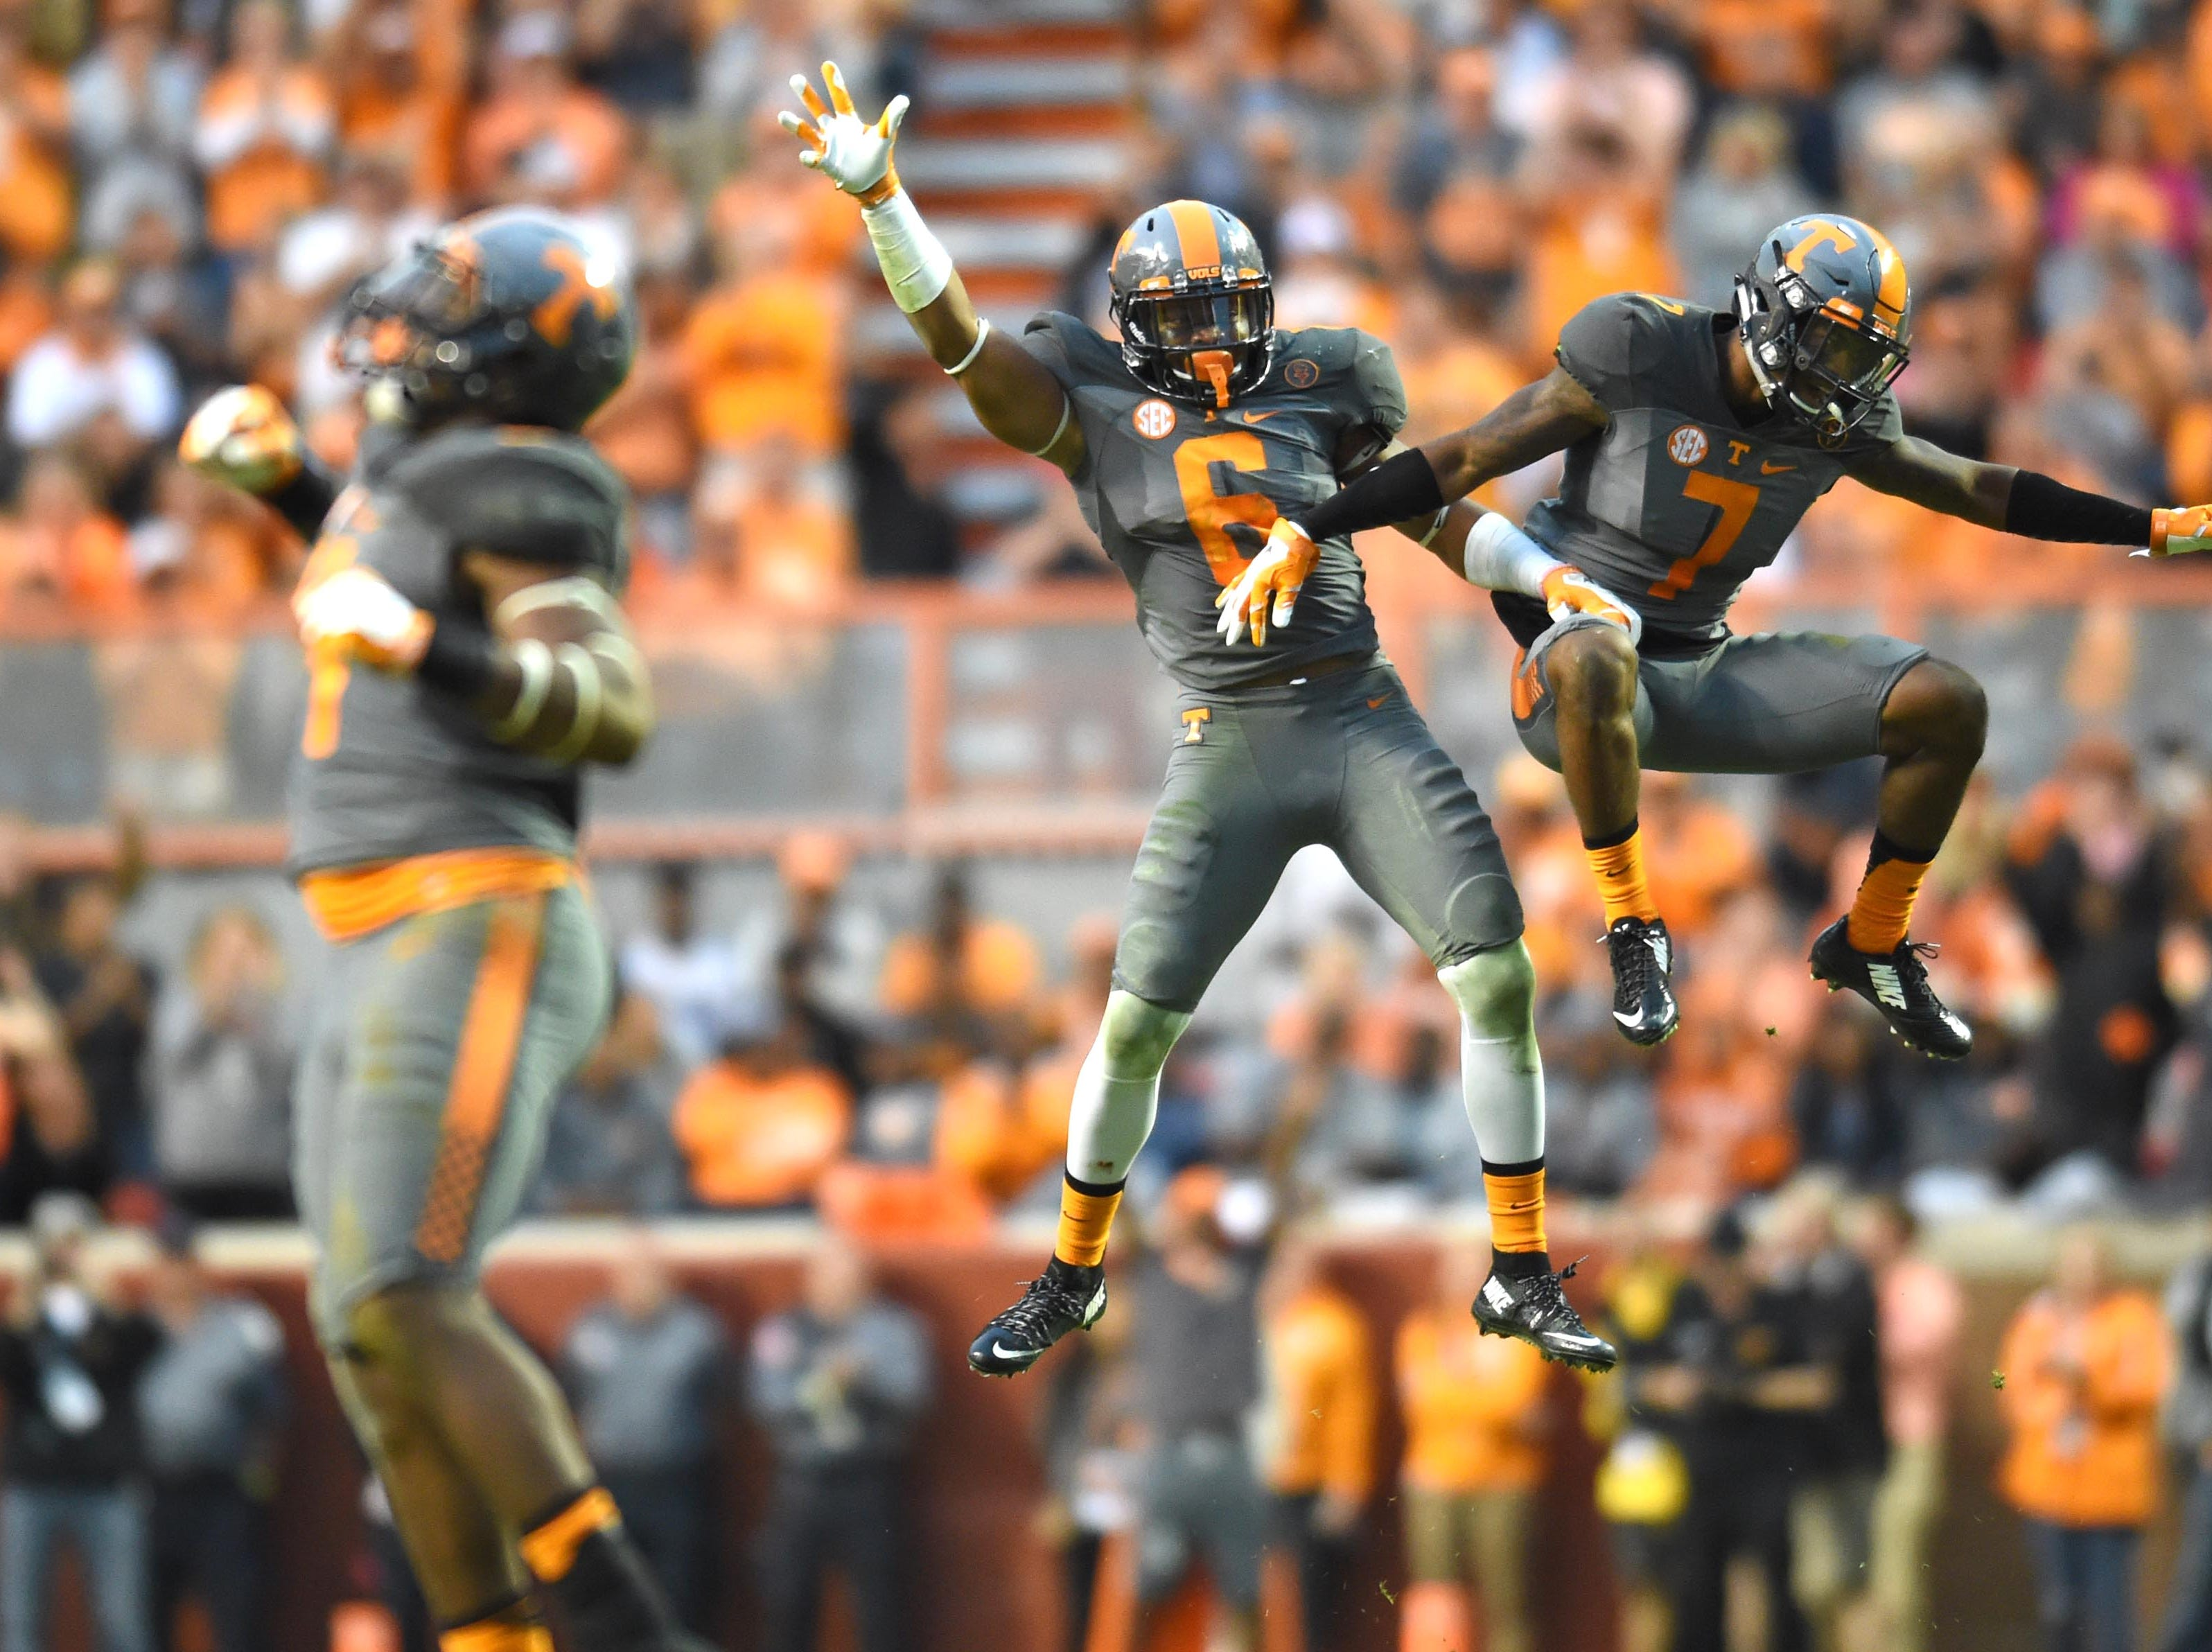 Tennessee defensive backs Todd Kelly Jr. (6) and  Cameron Sutton (7) celebrate Sutton's play denying Georgia a pass completion during the second half Saturday, Oct. 10, 2015, at Neyland Stadium. Tennessee came back from a 21-point deficit to win 38-31.